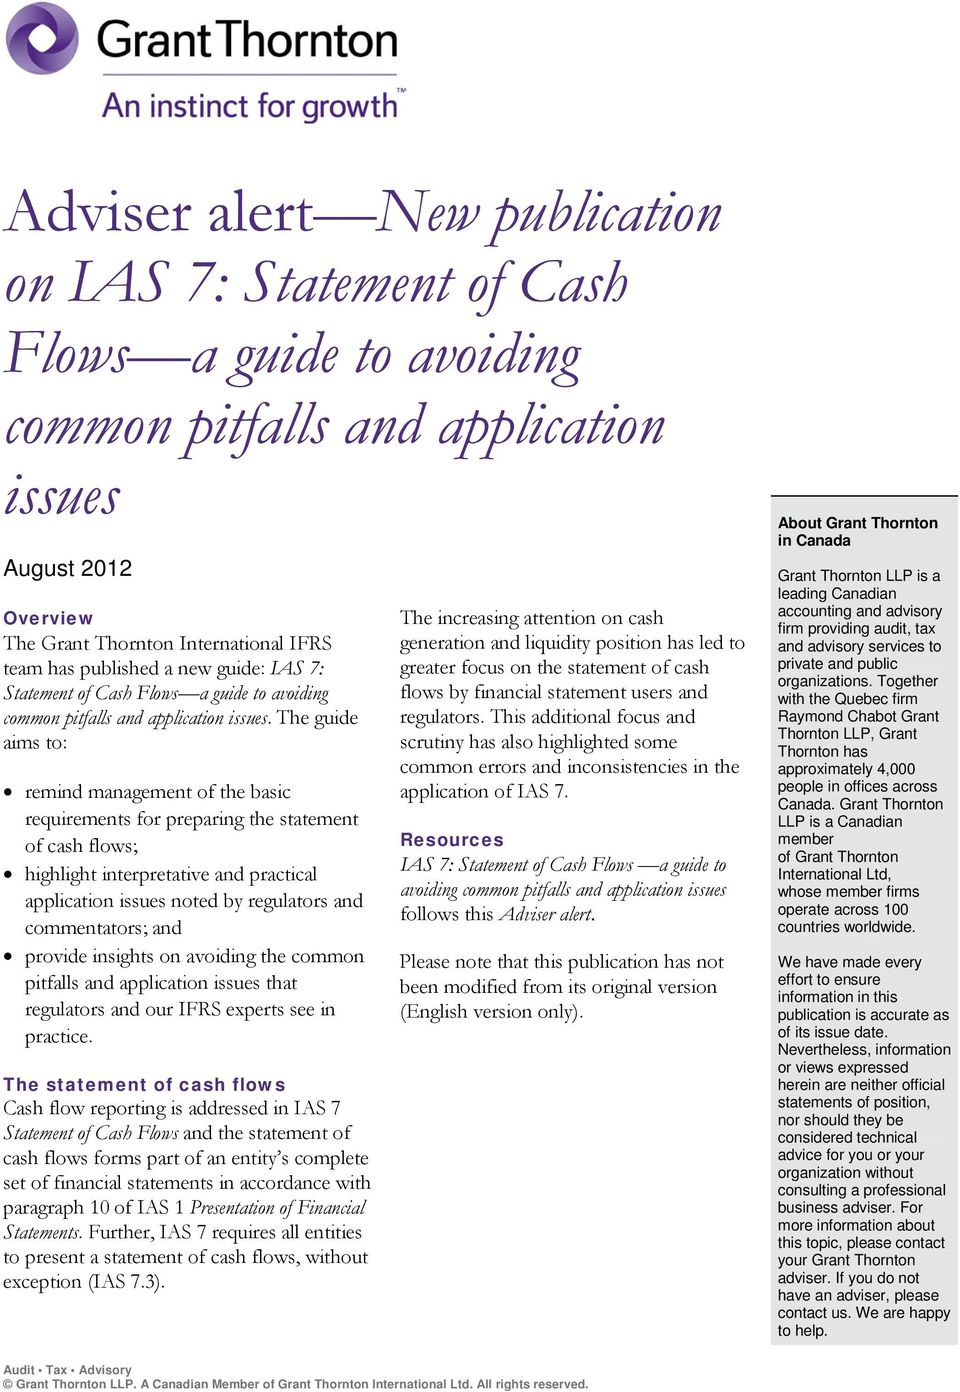 The guide aims to: remind management of the basic requirements for preparing the statement of cash flows; highlight interpretative and practical application issues noted by regulators and